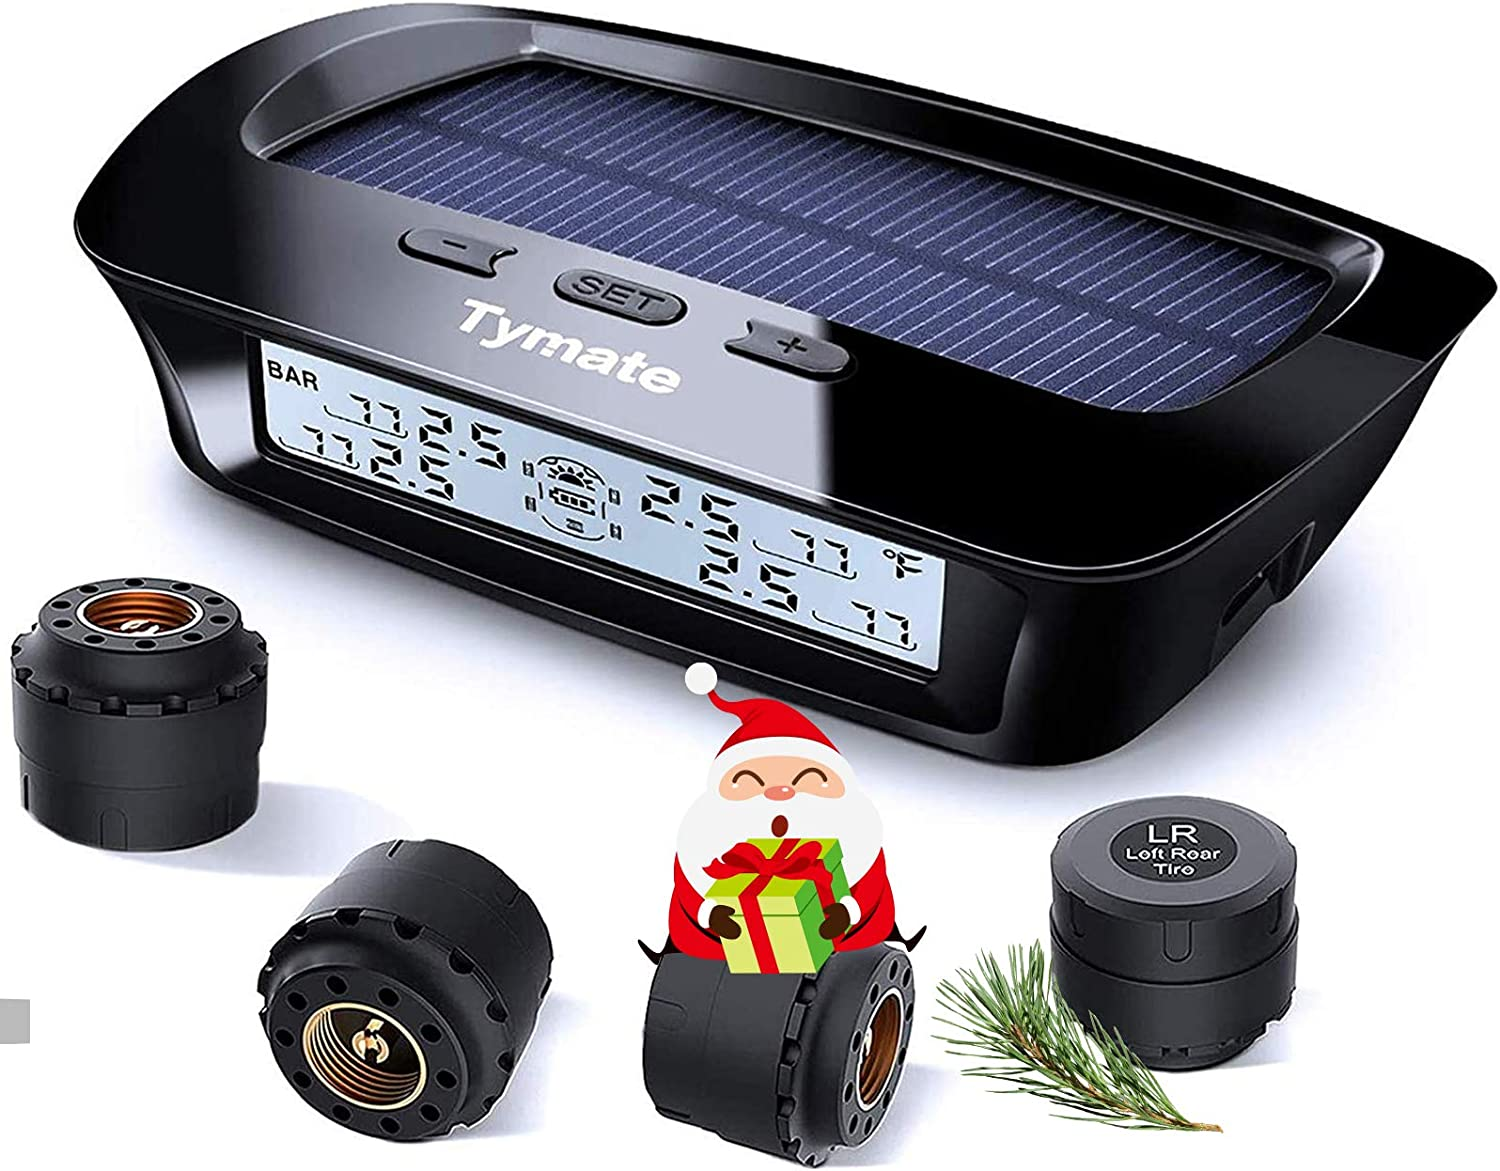 Tymate M12-3 Tire Pressure Monitoring System